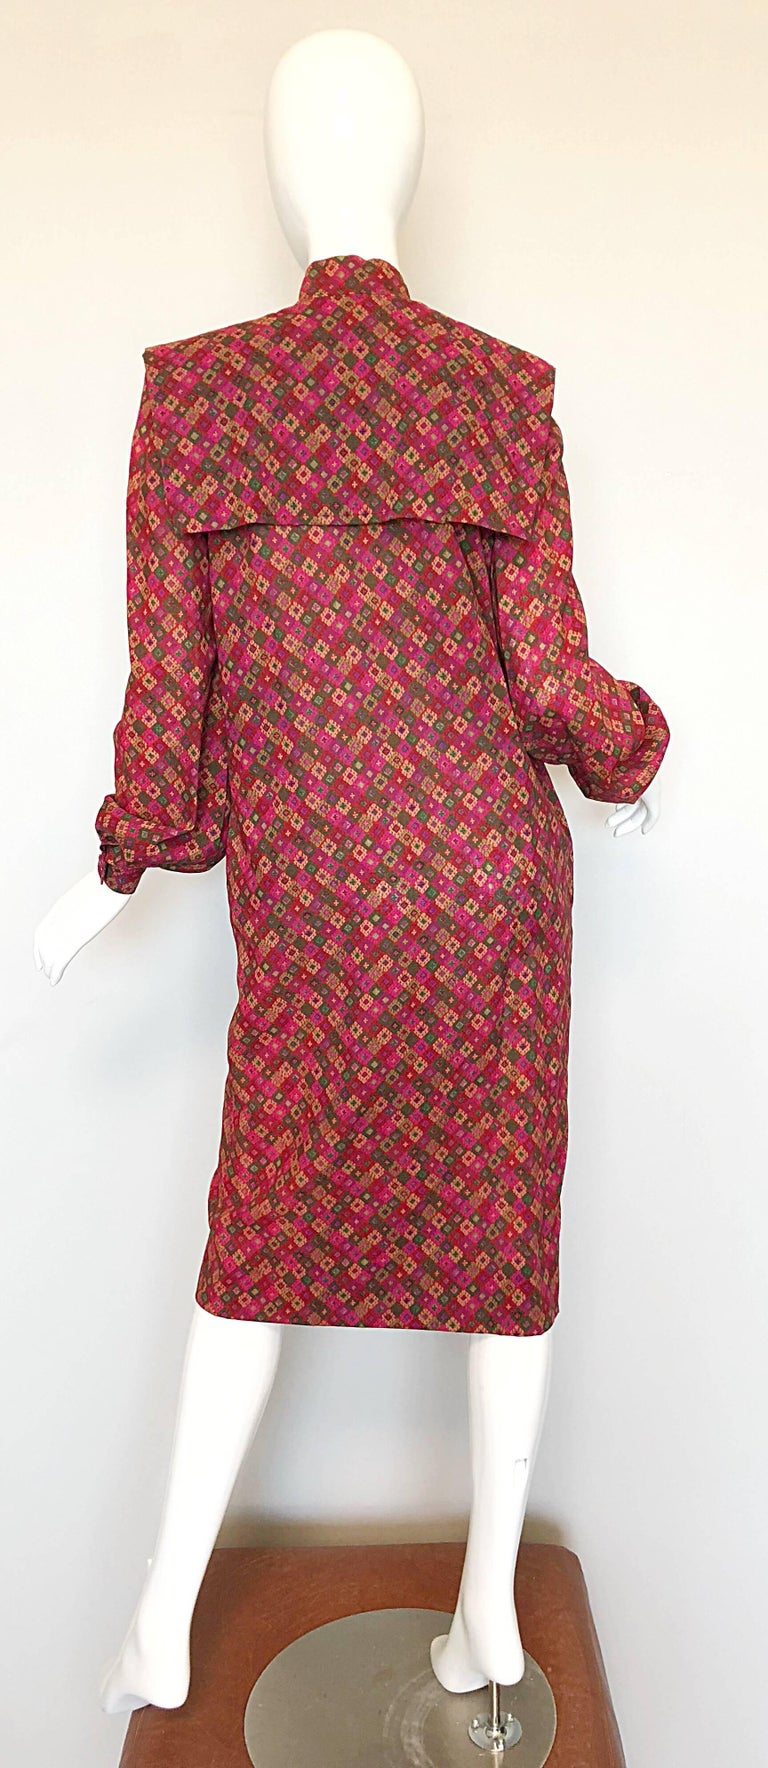 Women's Vintage Givenchy 1980s Mosaic Tile Print Pink + Green Lightweight Wool Sac Dress For Sale